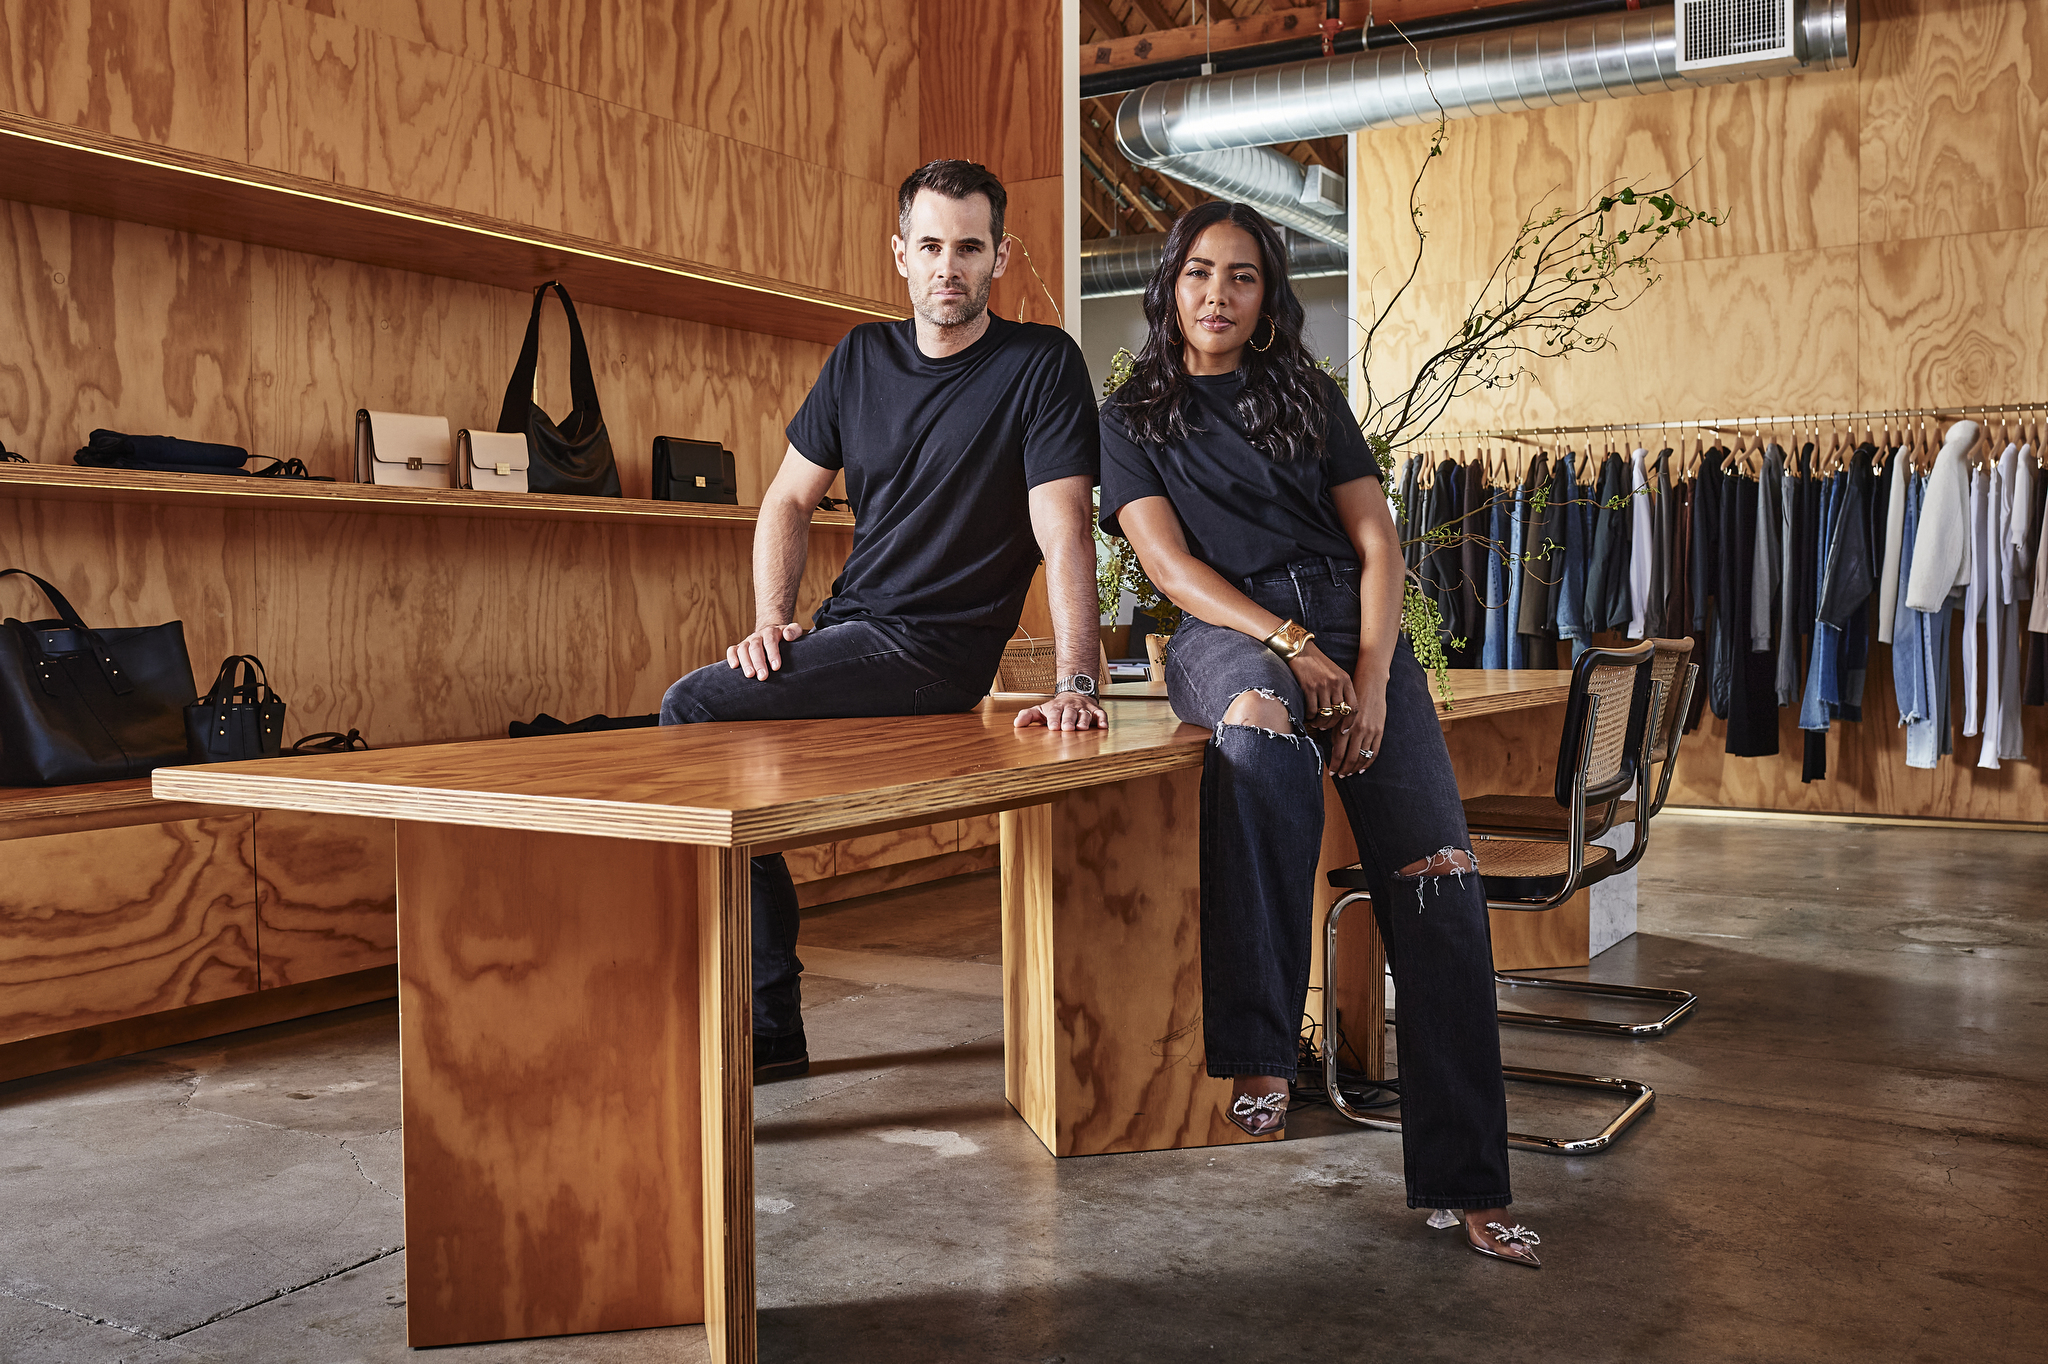 Jens Grede and Emma Grede at the Frame office in Culver City, California.